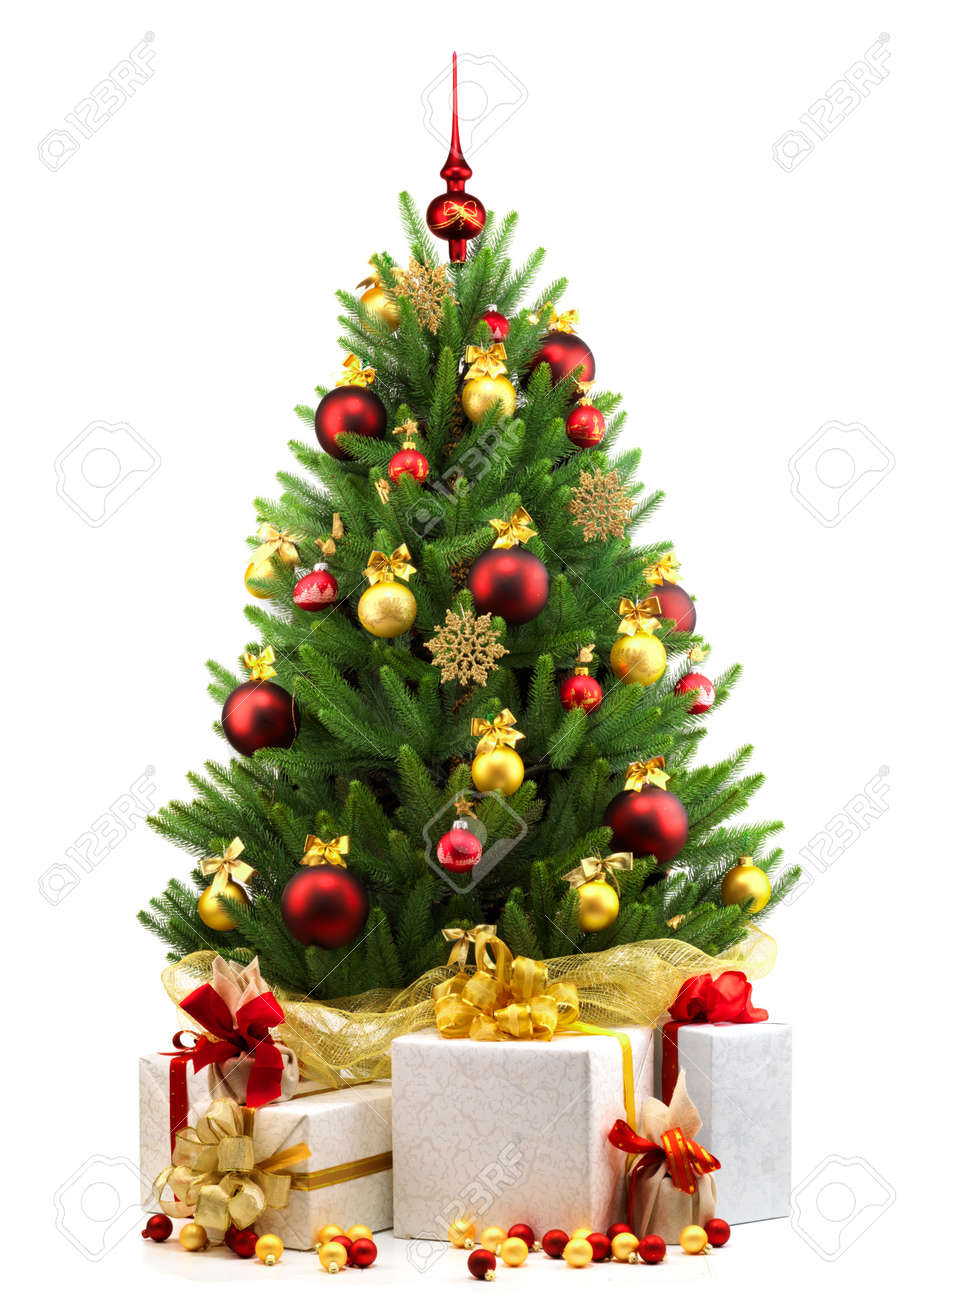 christmas trees stock photos pictures royalty free christmas free images of christmas trees - Free Christmas Trees